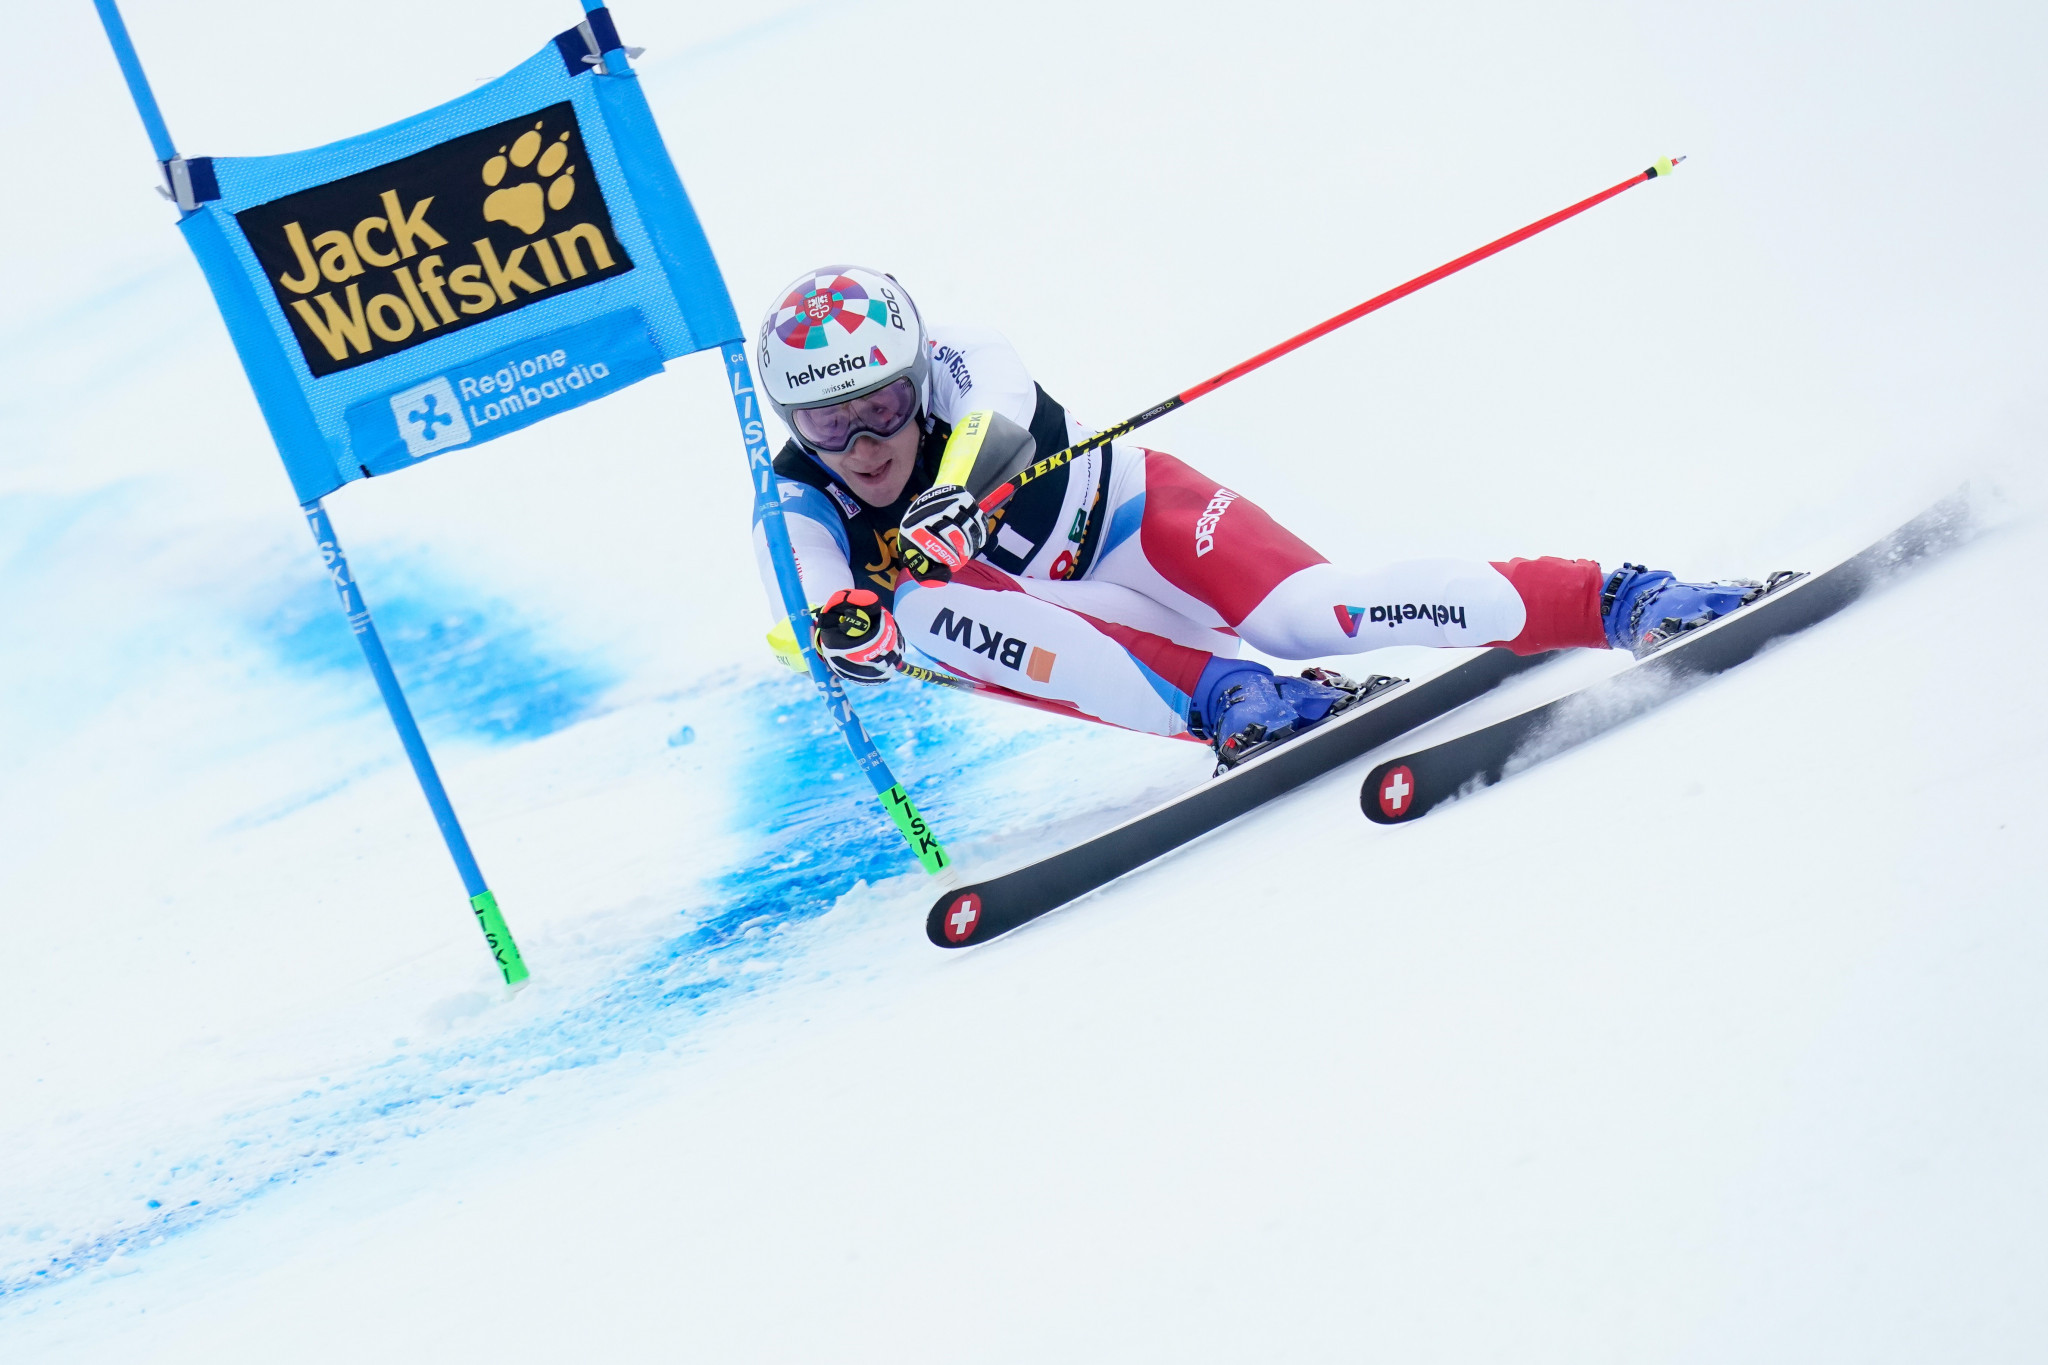 Switzerland's Marco Odermatt leads the men's giant slalom standings after four races ©Getty Images